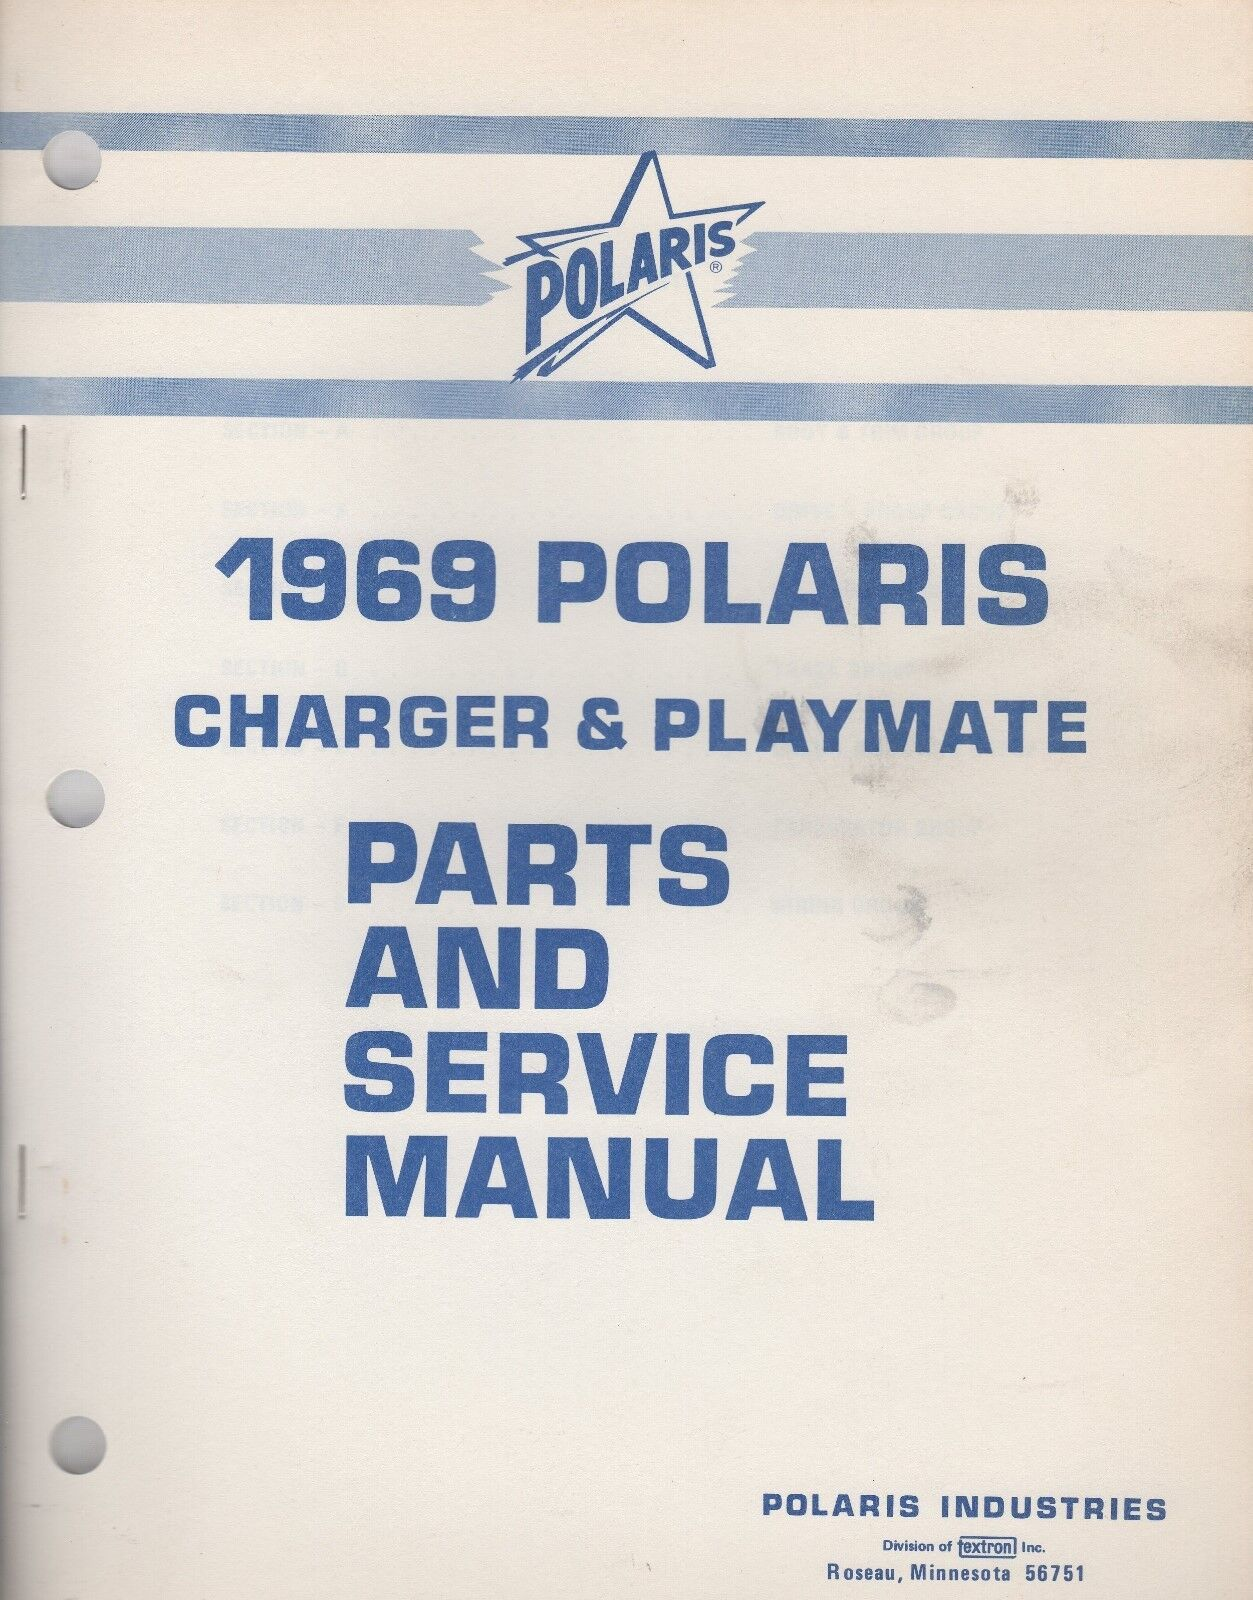 1969 POLARIS  SNOWMOBILE CHARGER & PLAYMATE PARTS and SERVICE MANUAL (885)  save 50%-75%off